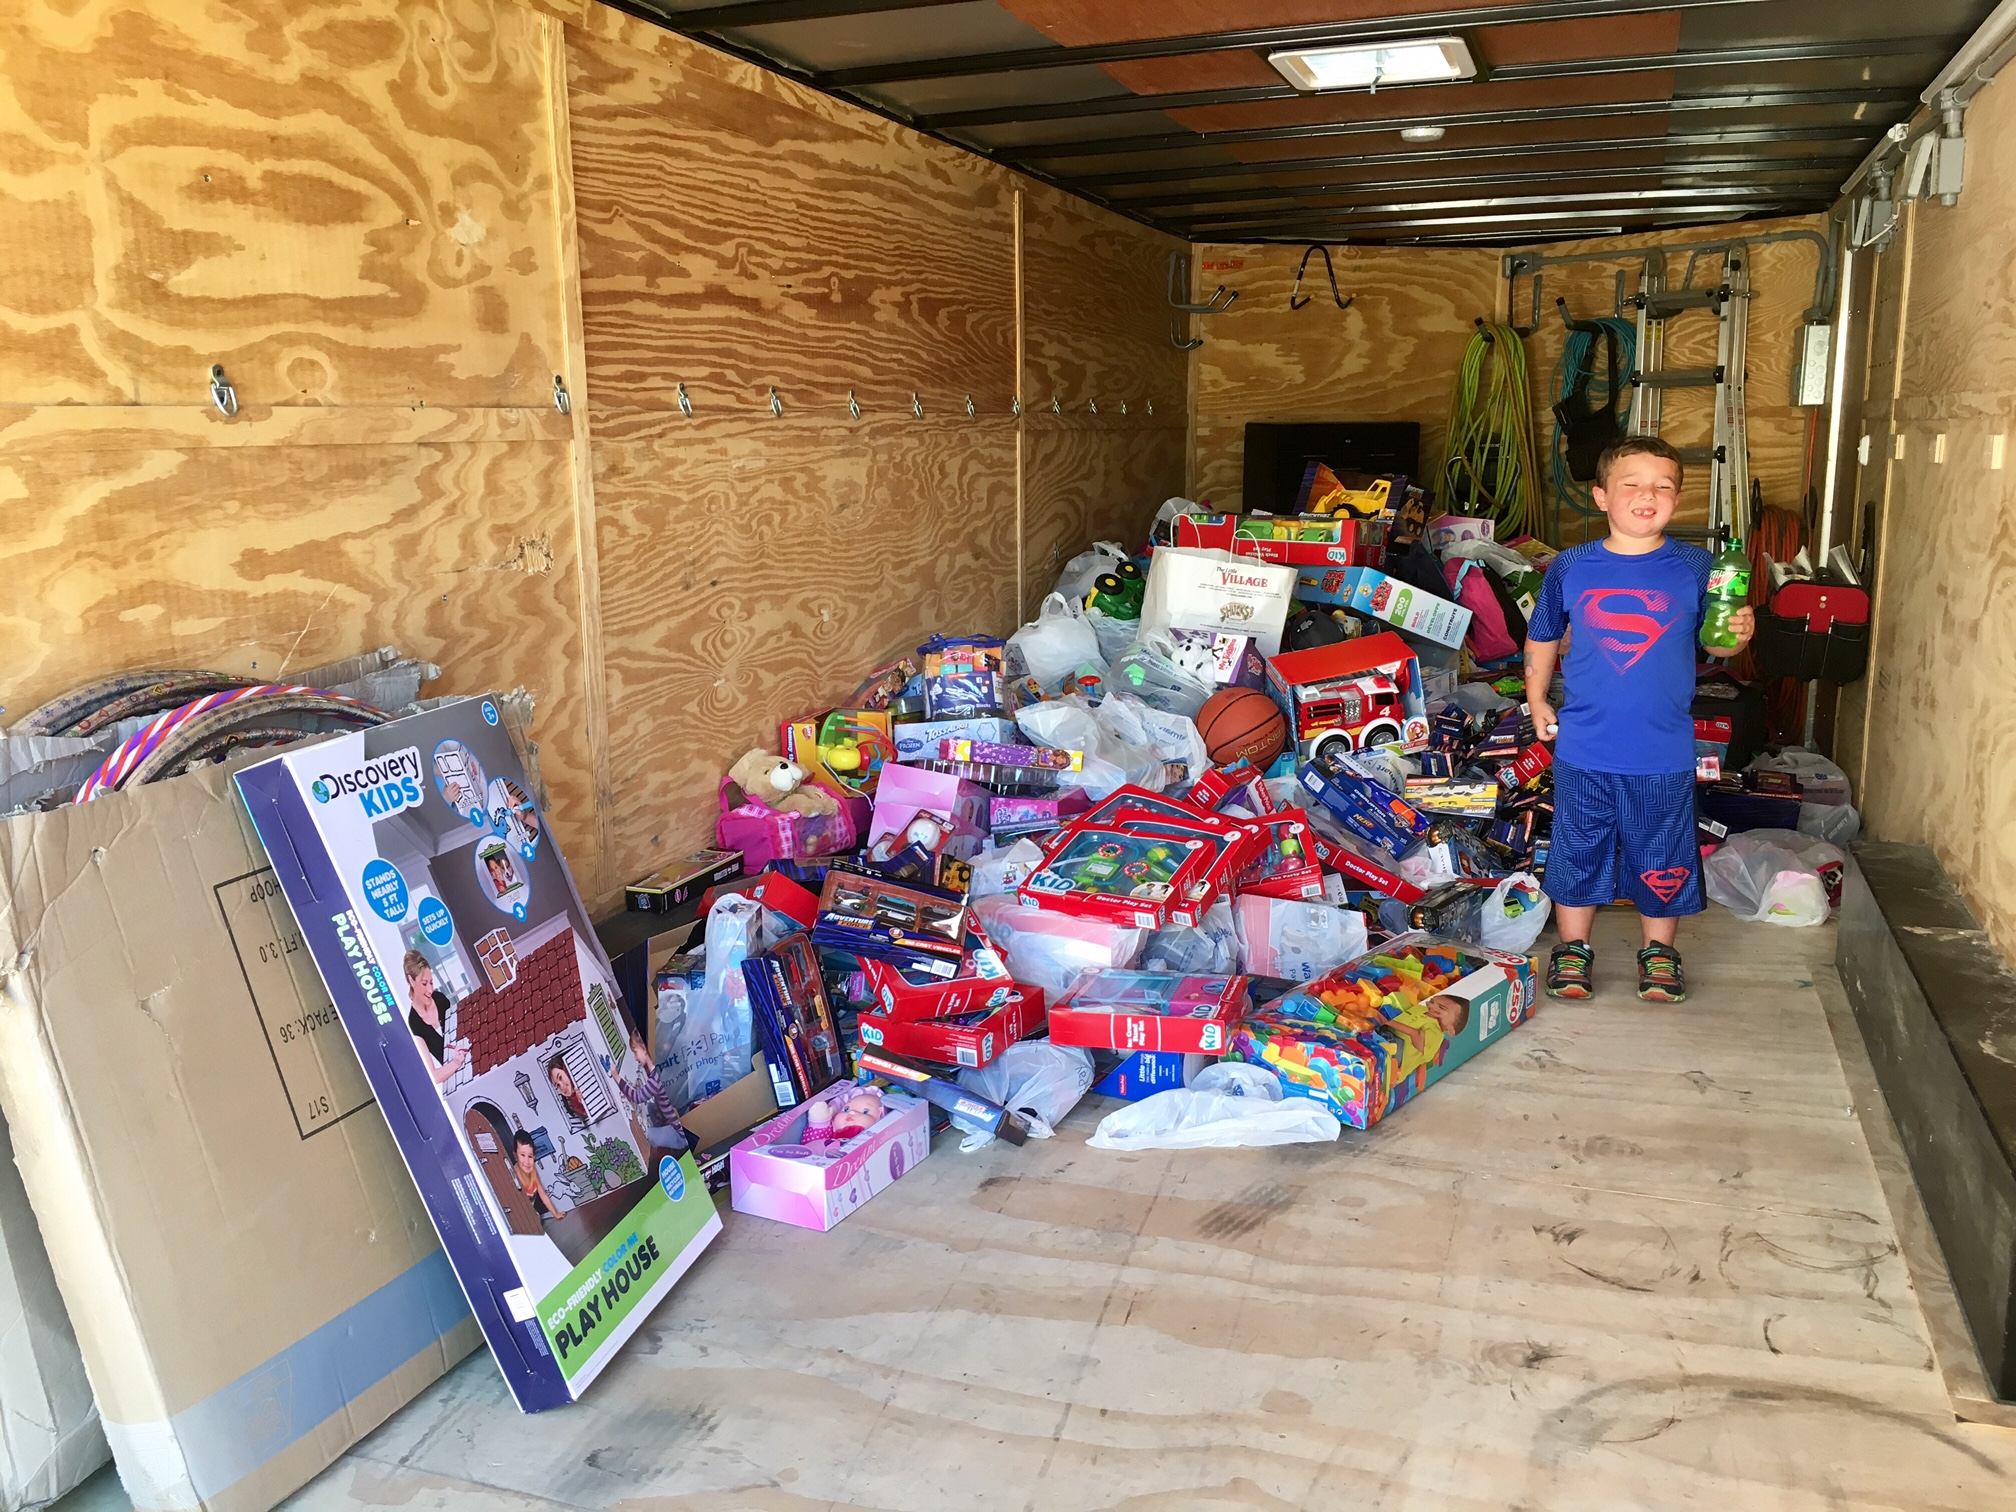 Louisiana family donates thousands of dollars worth of toys to Groves children